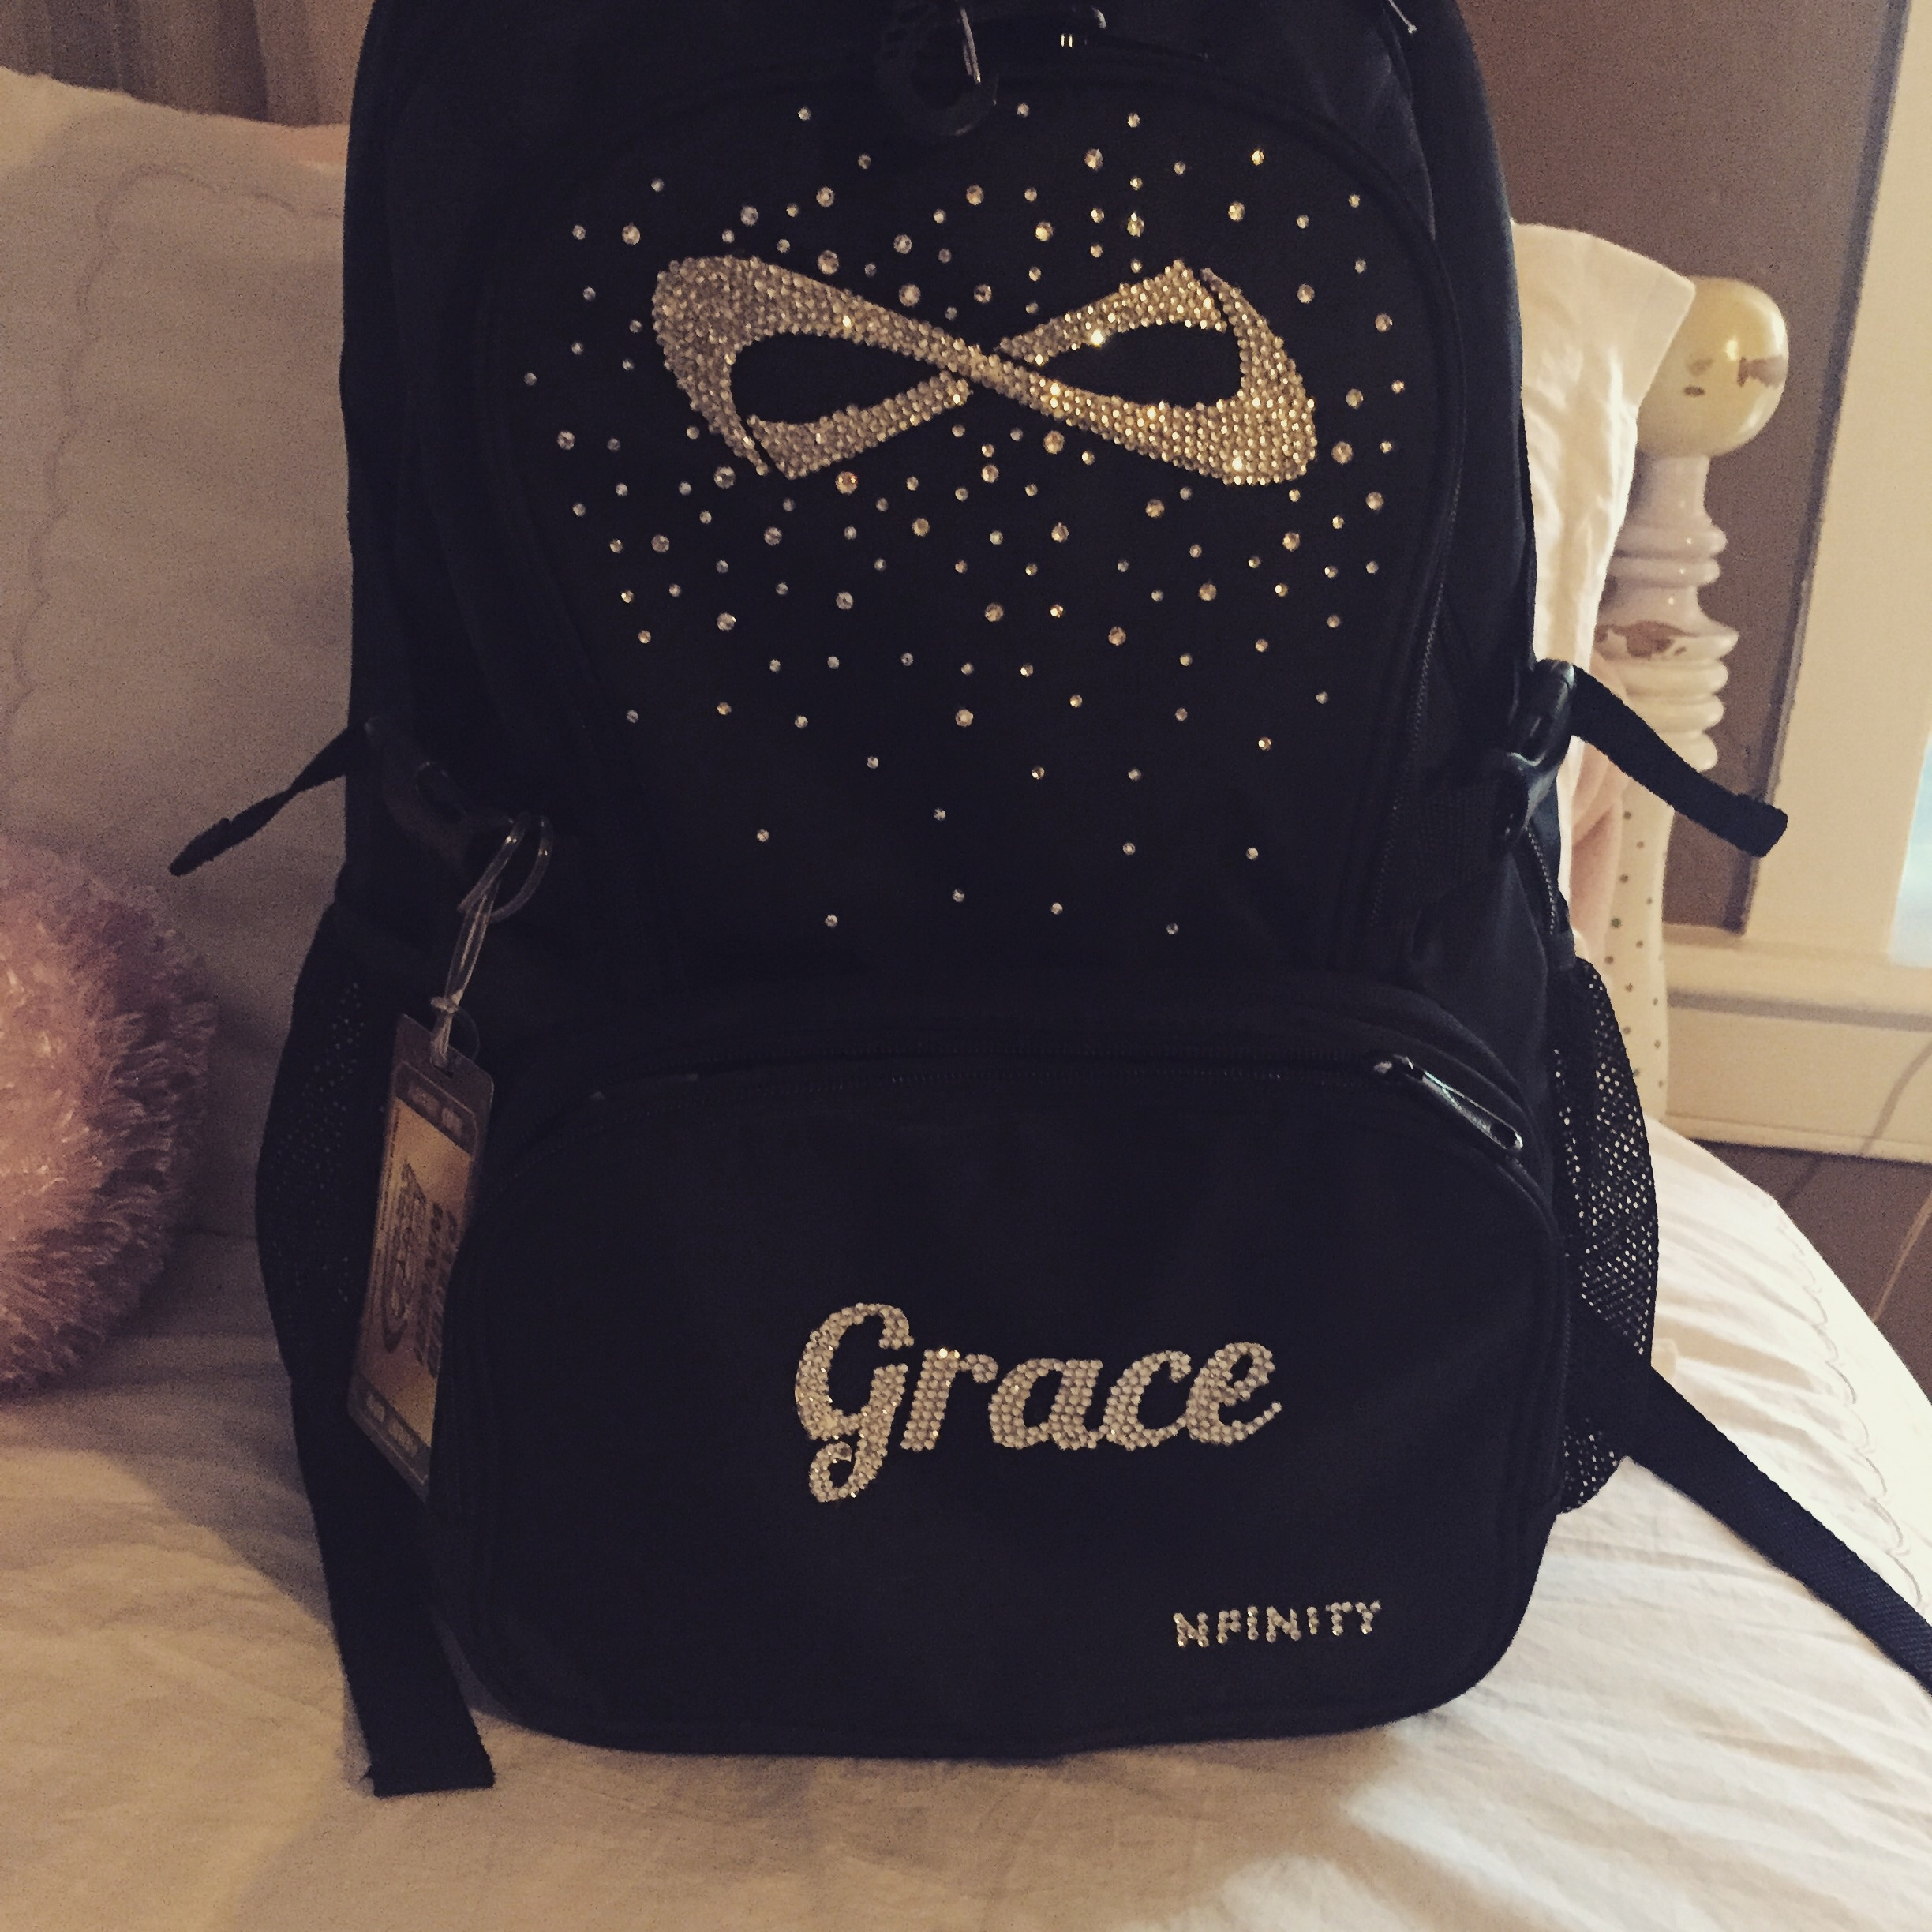 nfinity cheer backpack school and all star cheer gear